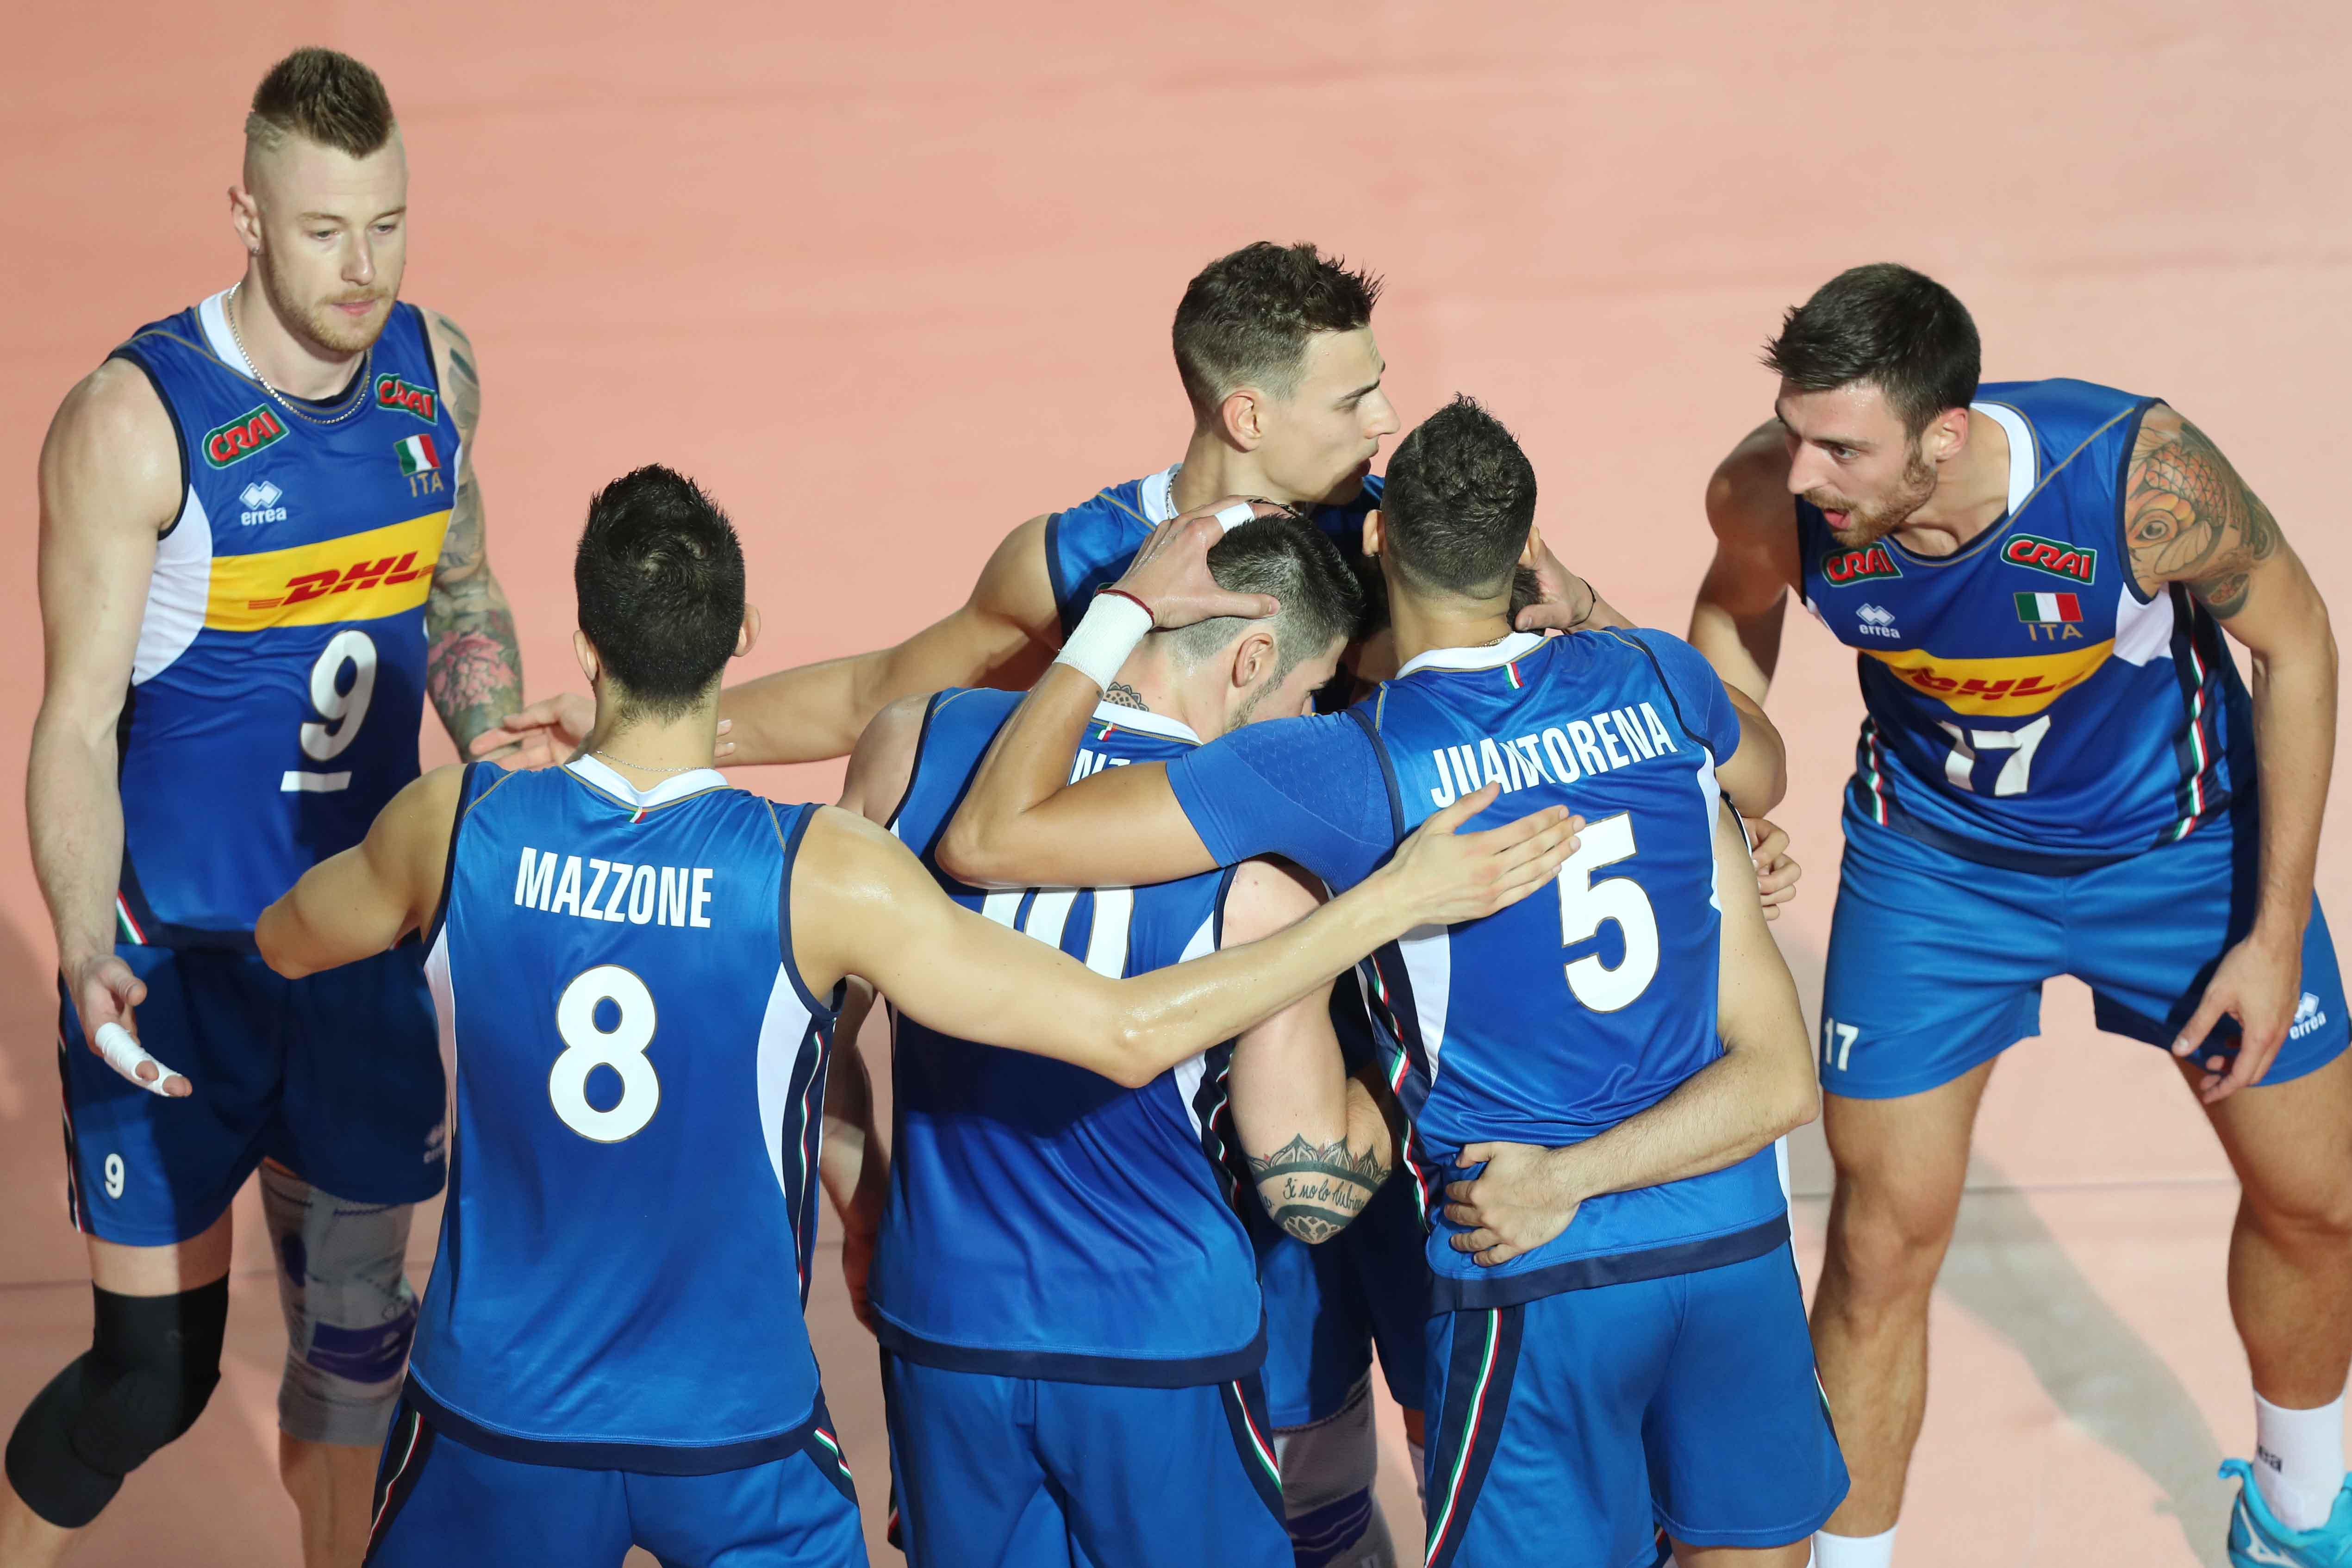 Volleyball World Championship 2018: Italy beat Slovenia to finish the first round with maximum points. Here is the schedule of second round games!